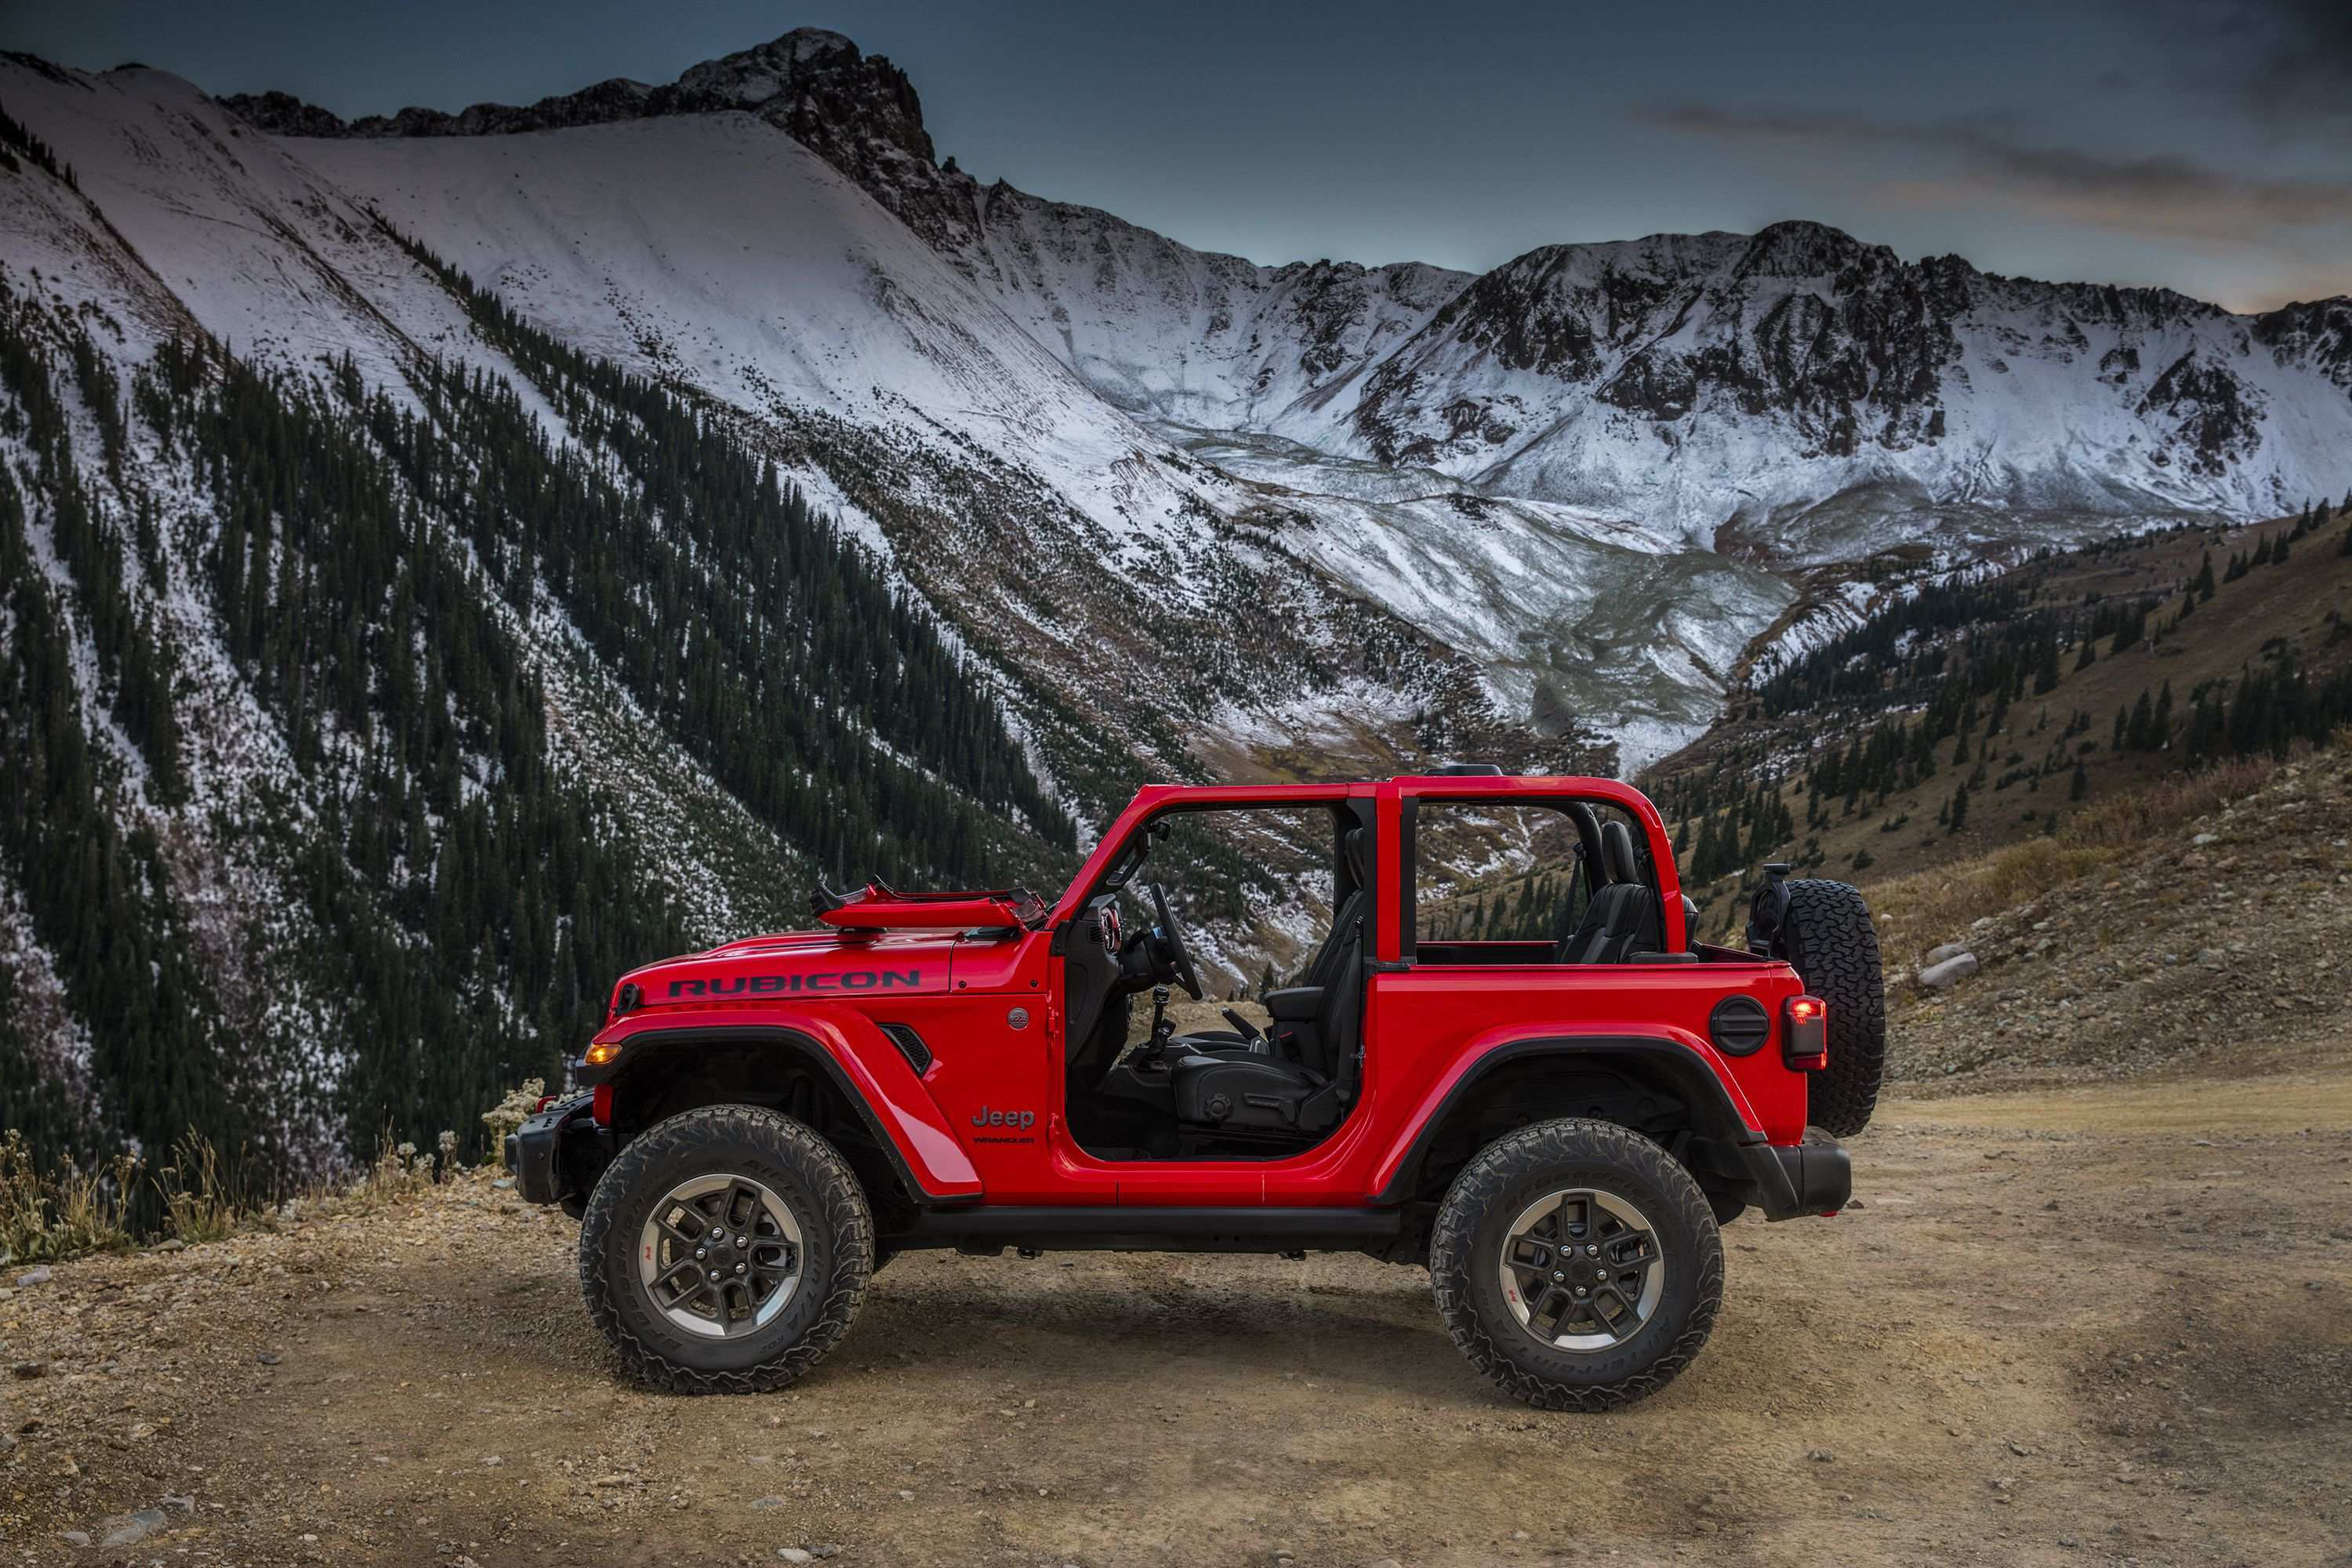 22 Concept of 2019 Jeep Jt Price Review for 2019 Jeep Jt Price